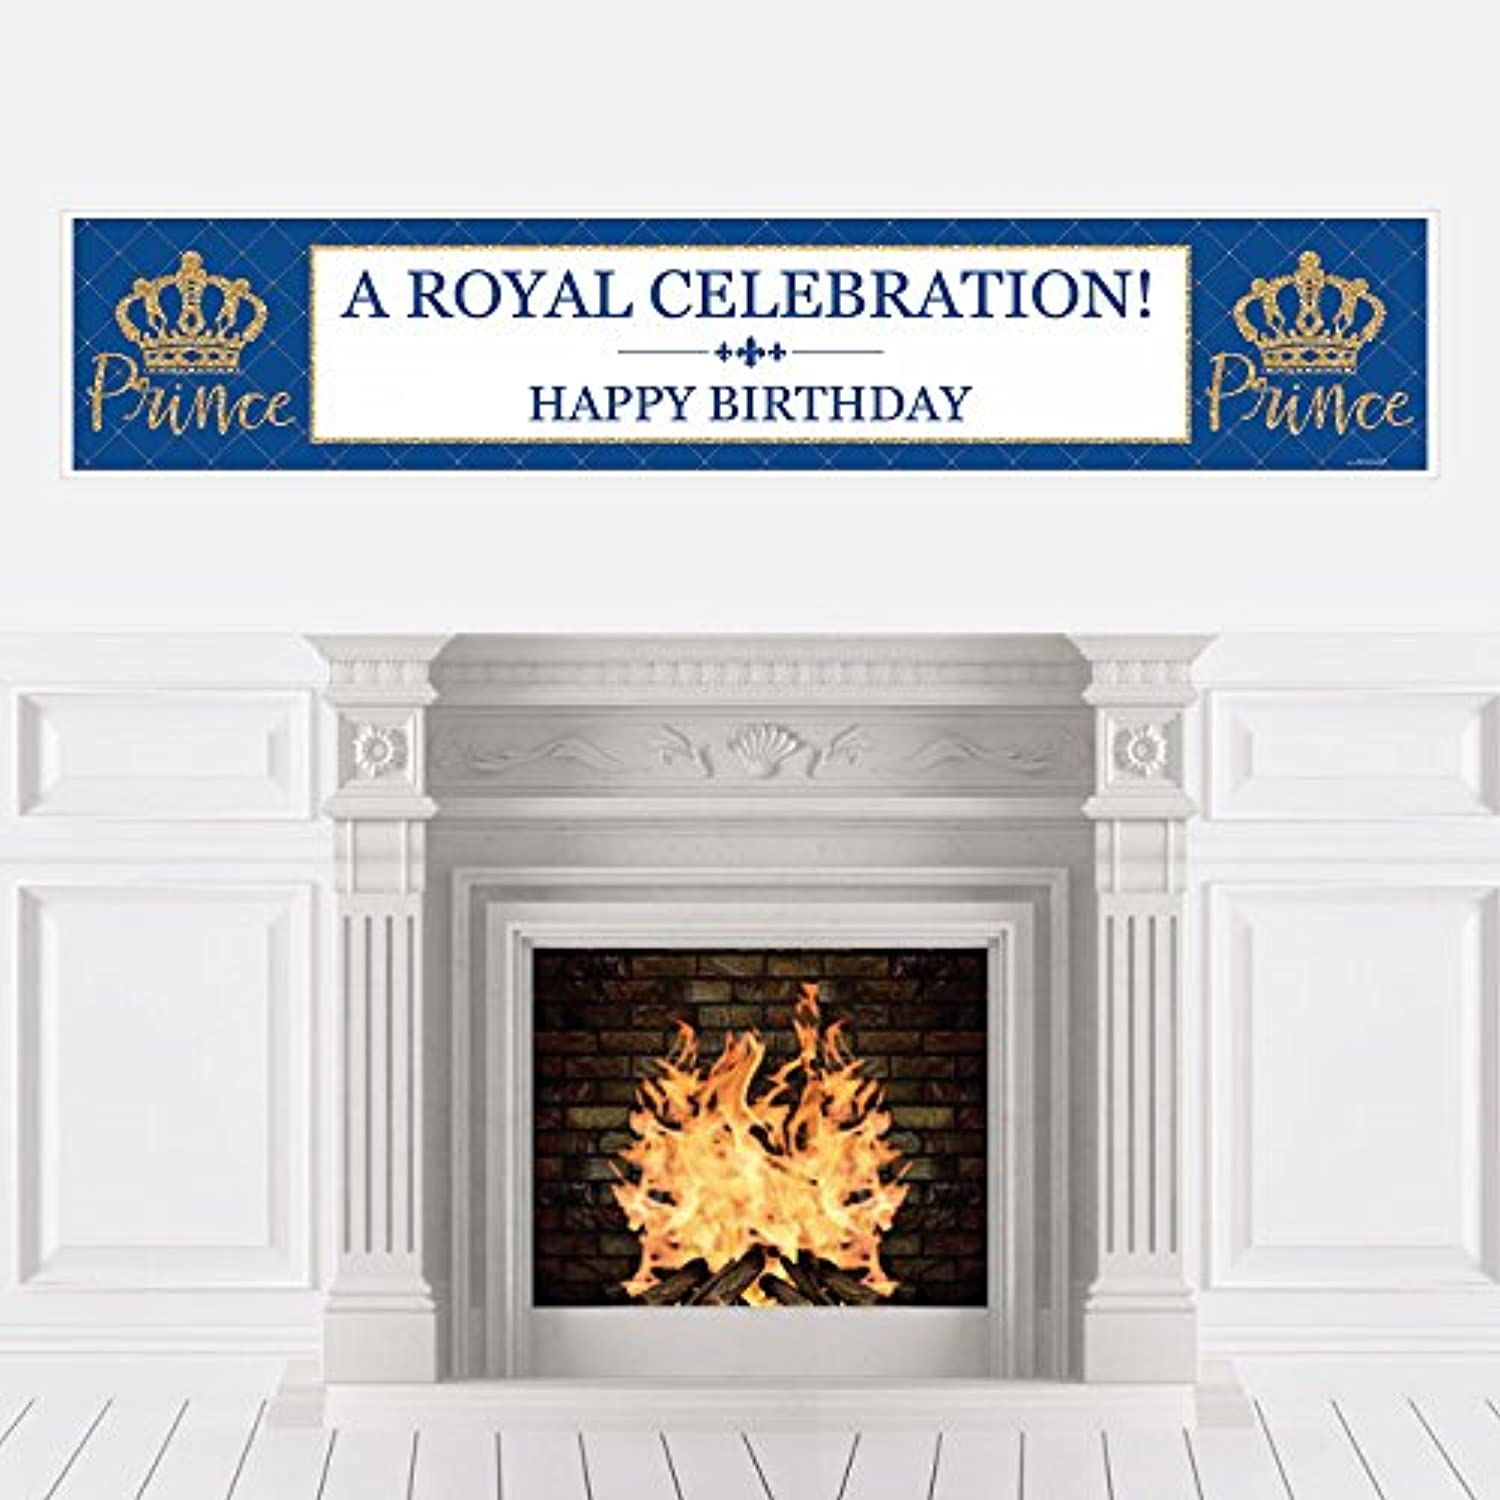 Royal Prince Charming - Birthday Party Decorations Party Banner